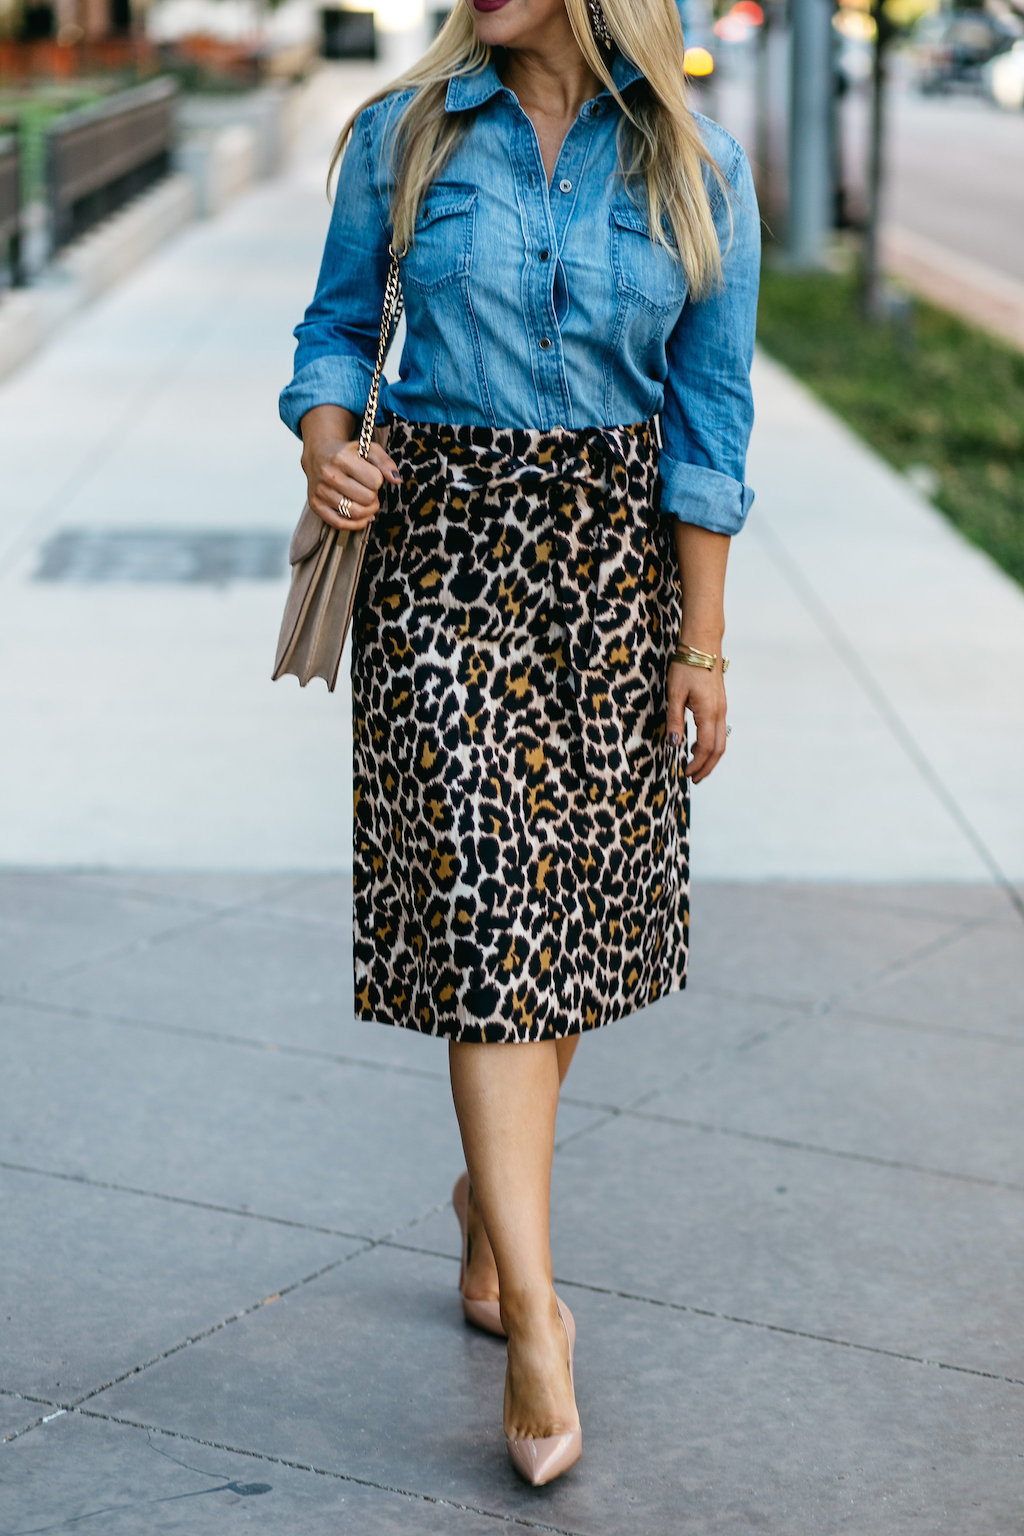 The Darling Petite Diva | Leopard Skirt